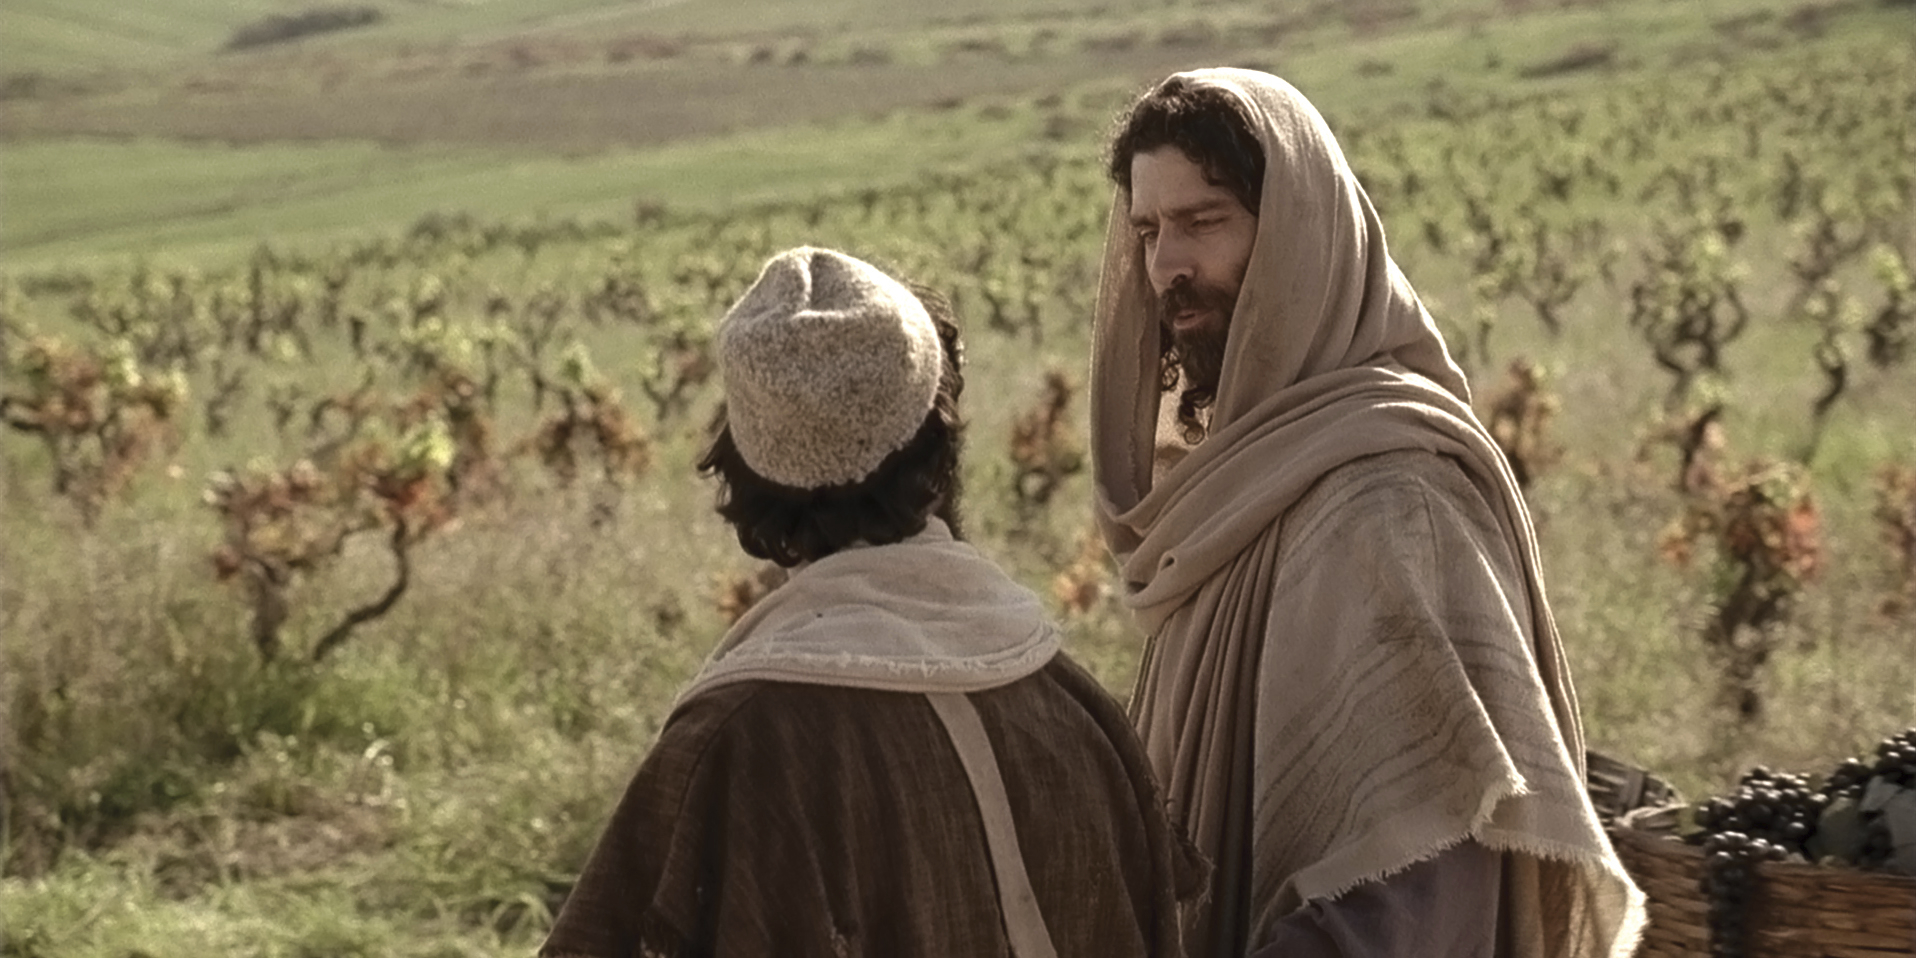 The master of the vineyard in Jesus's parable.